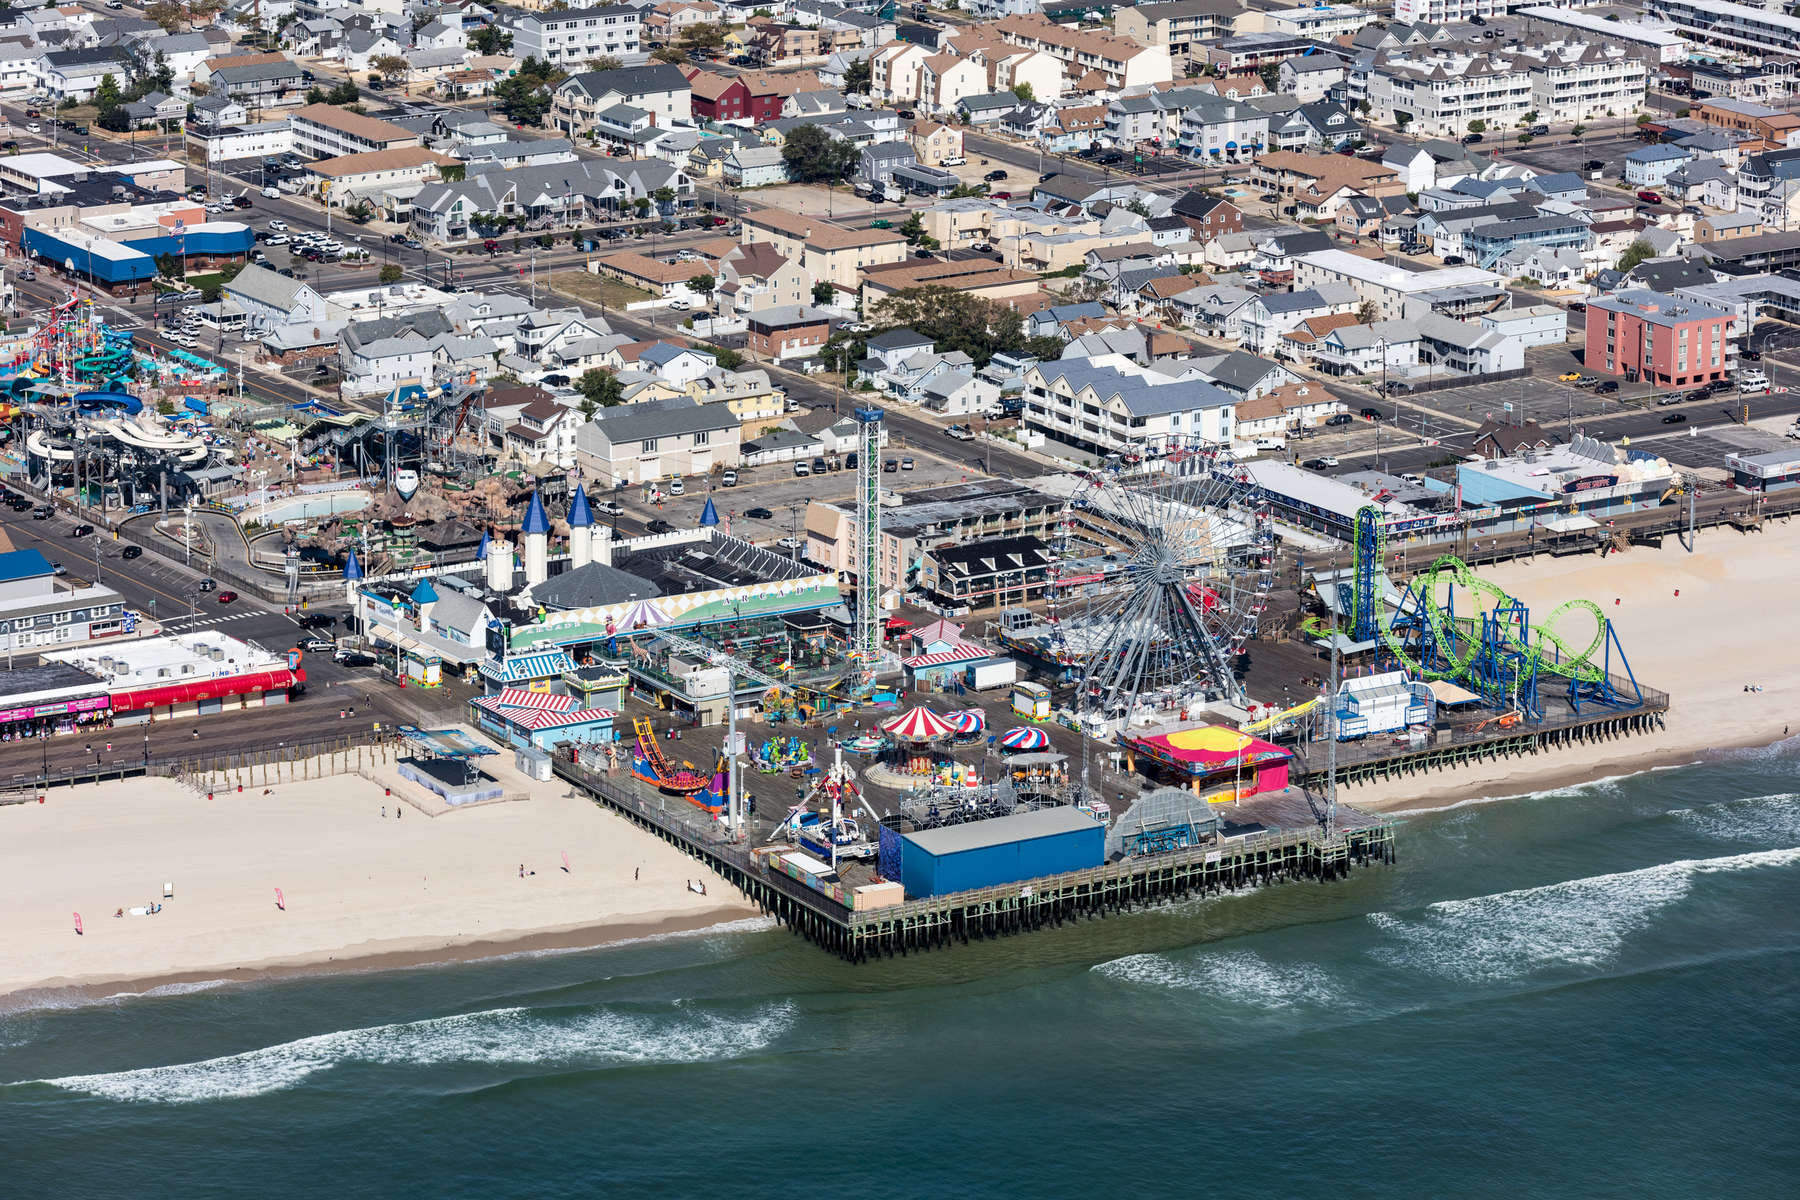 Casino Pier & Breakwater Beach, Seaside Heights, New York 2018 (180904-0253)